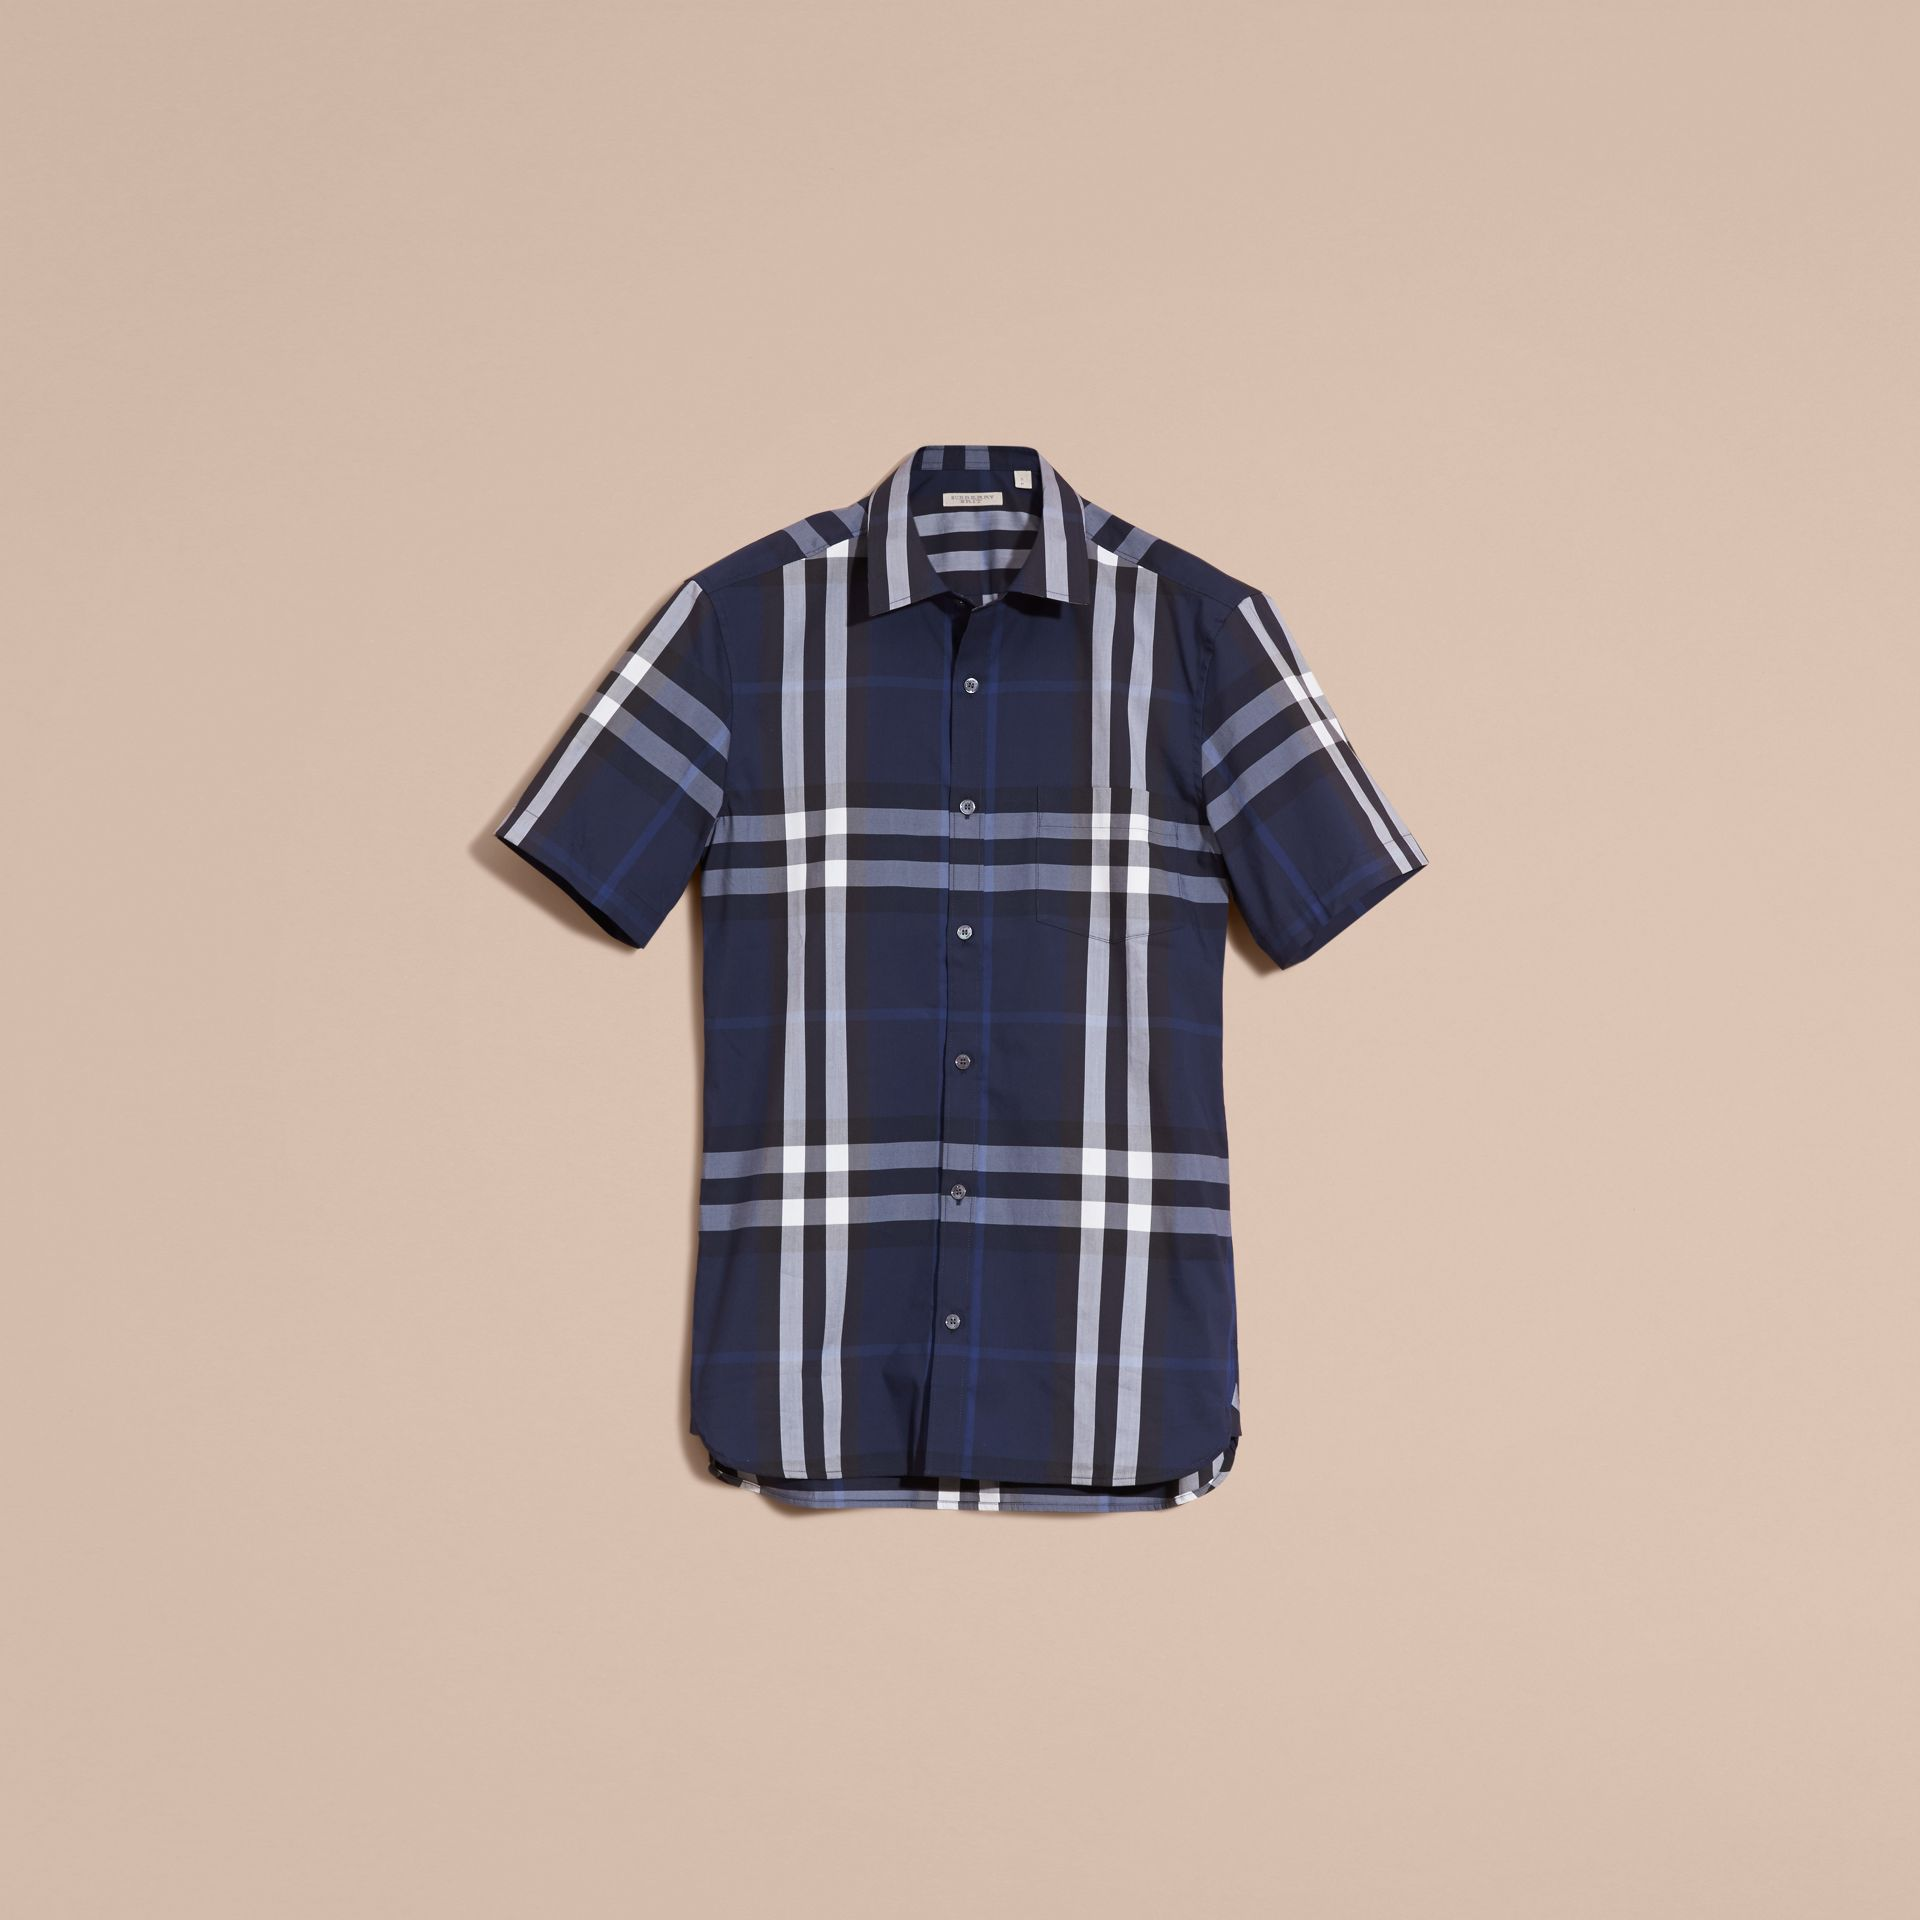 Short-sleeved Check Stretch Cotton Shirt in Indigo Blue - Men | Burberry - gallery image 4